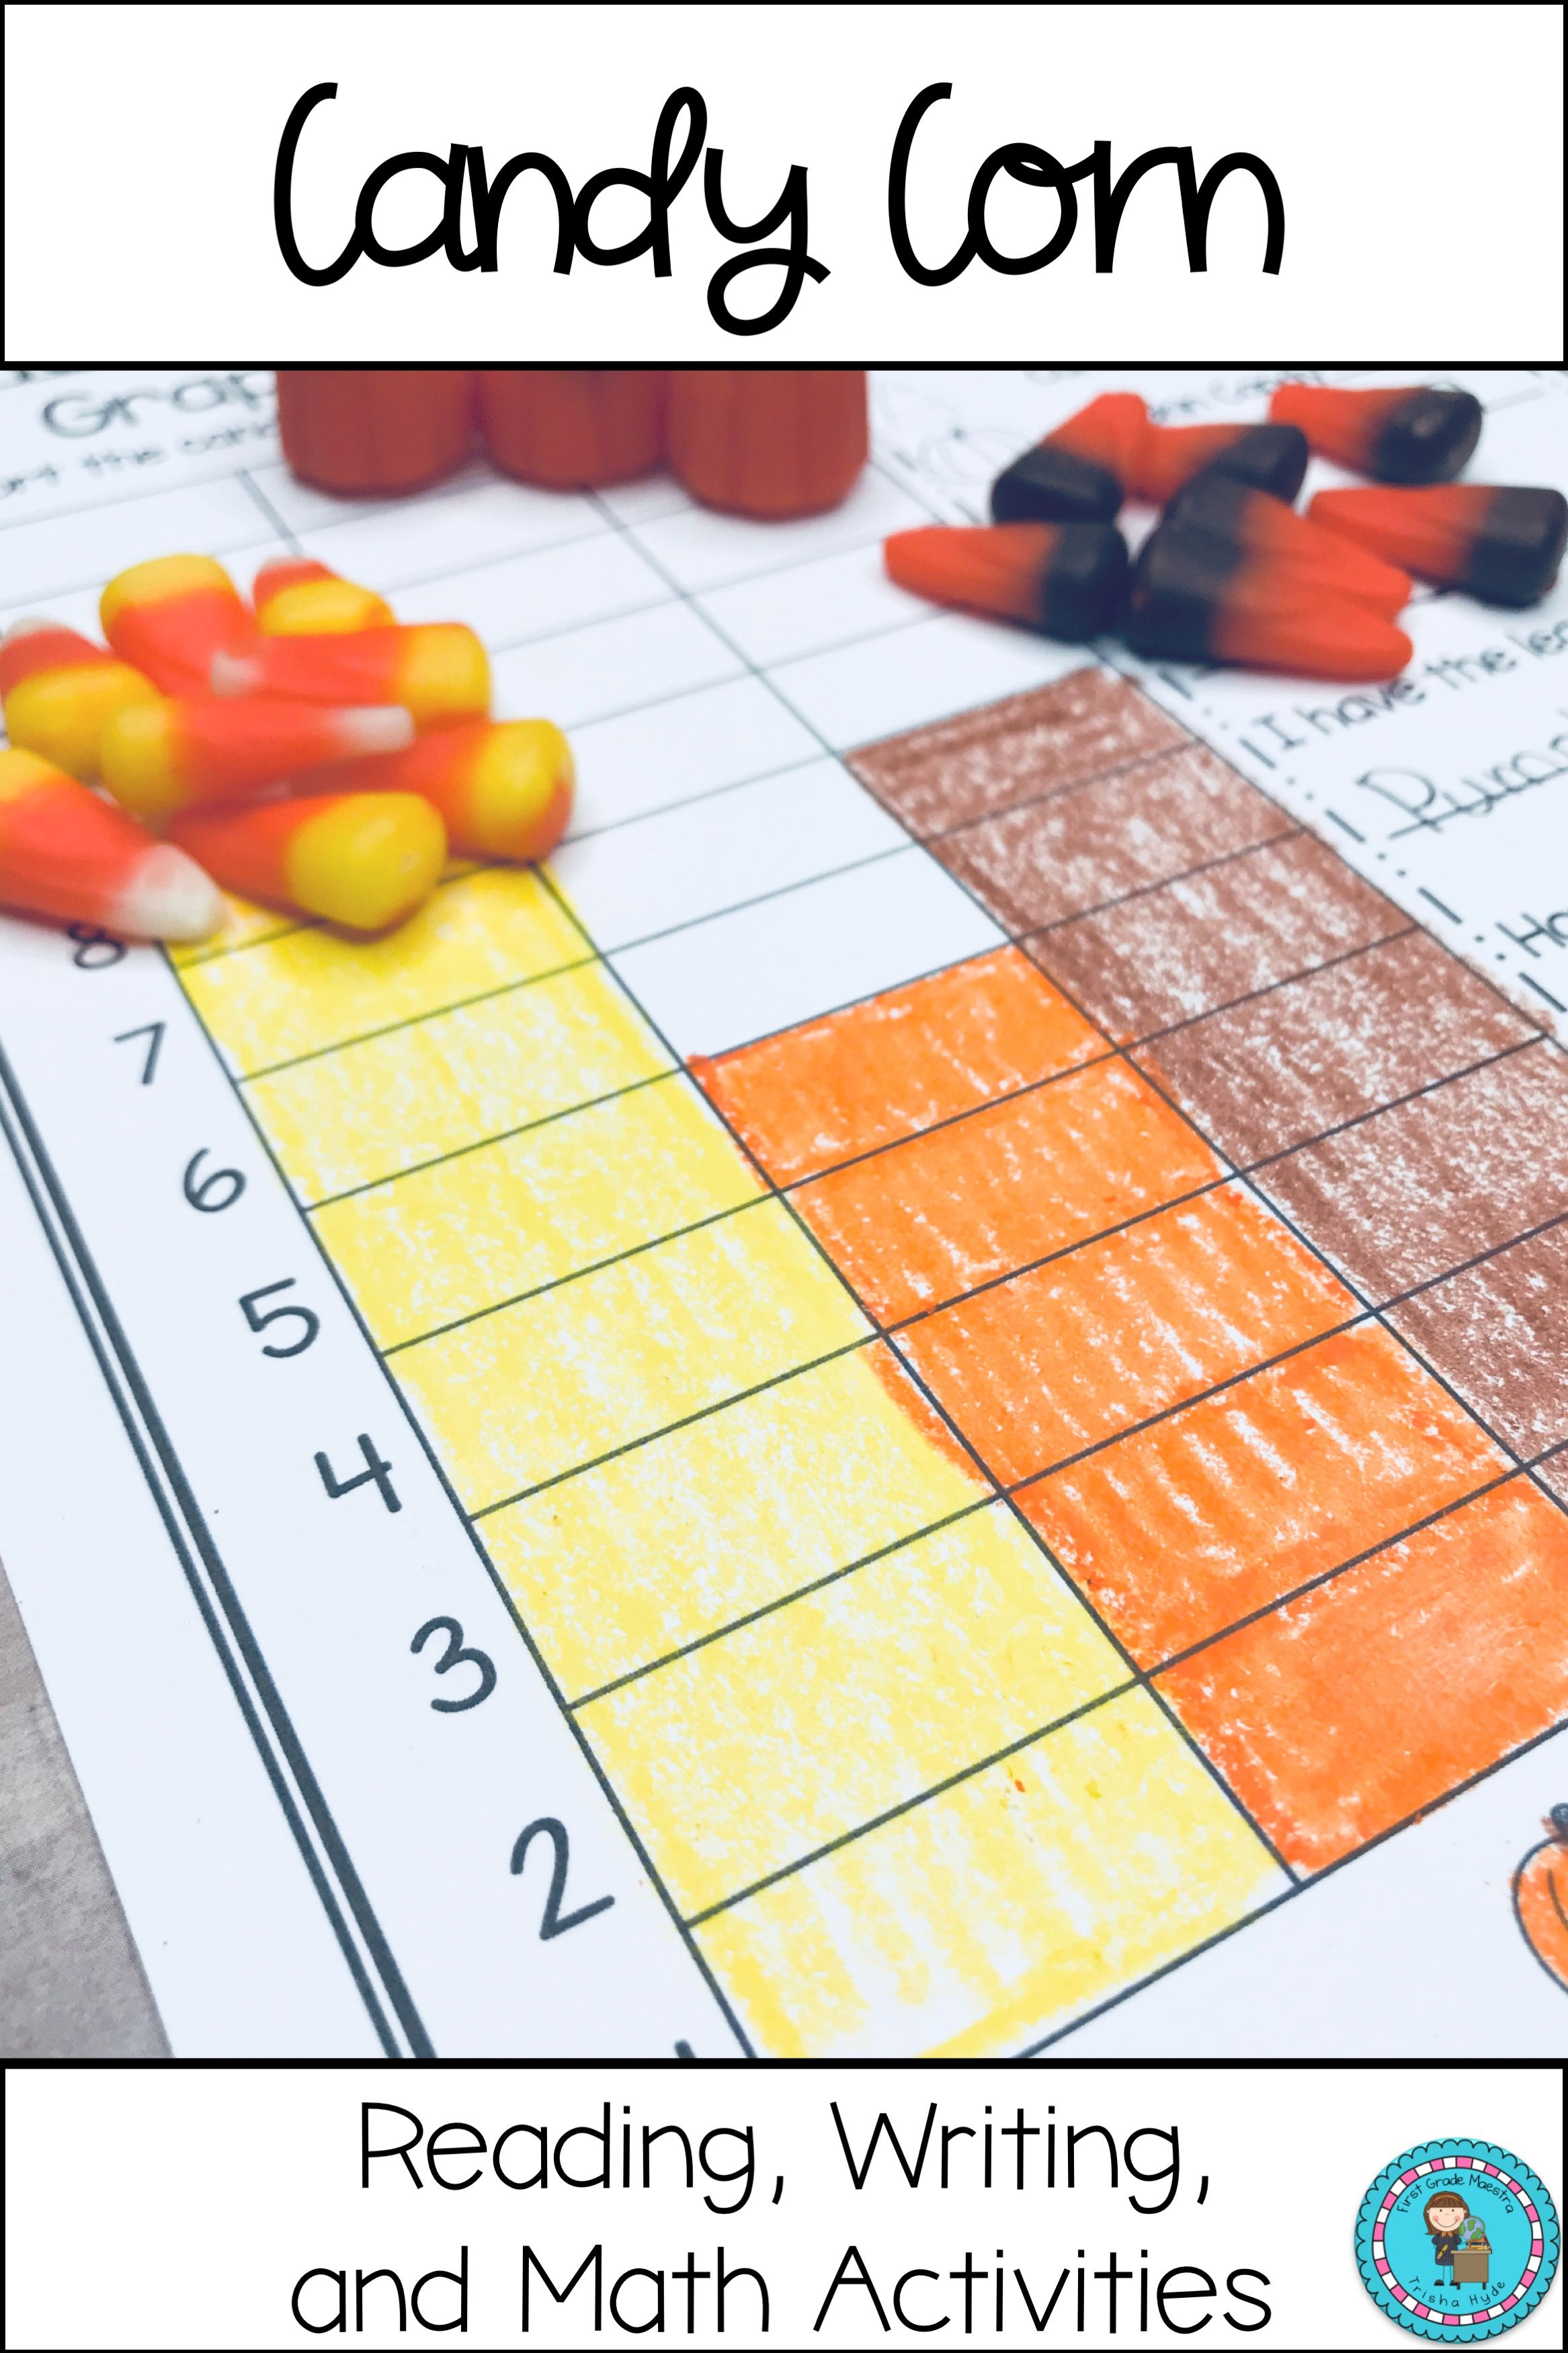 Halloween Candy Corn Activities With Images